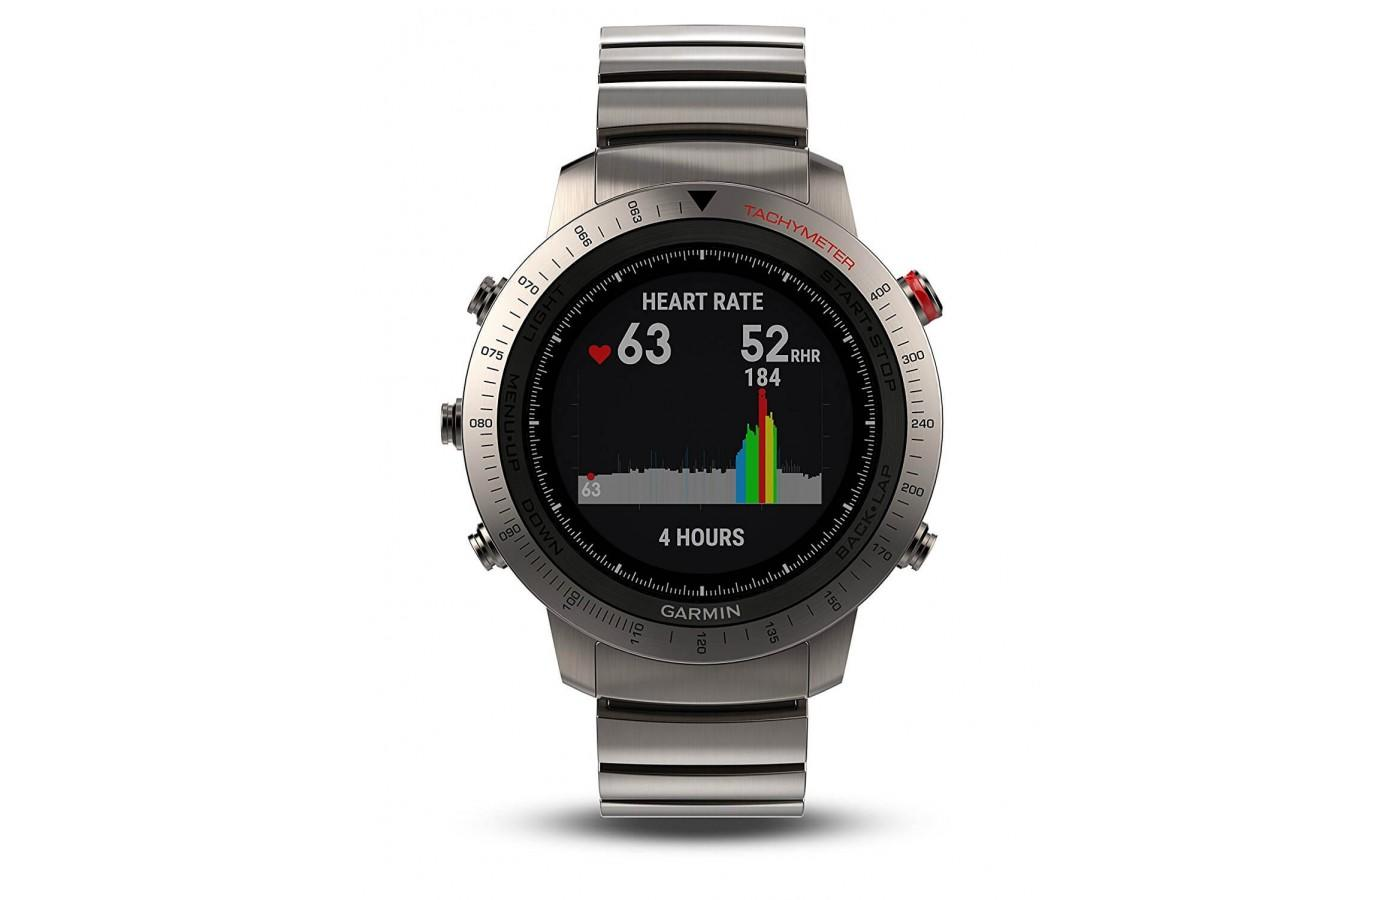 The Fenix Chronos has a built in heart rate monitor